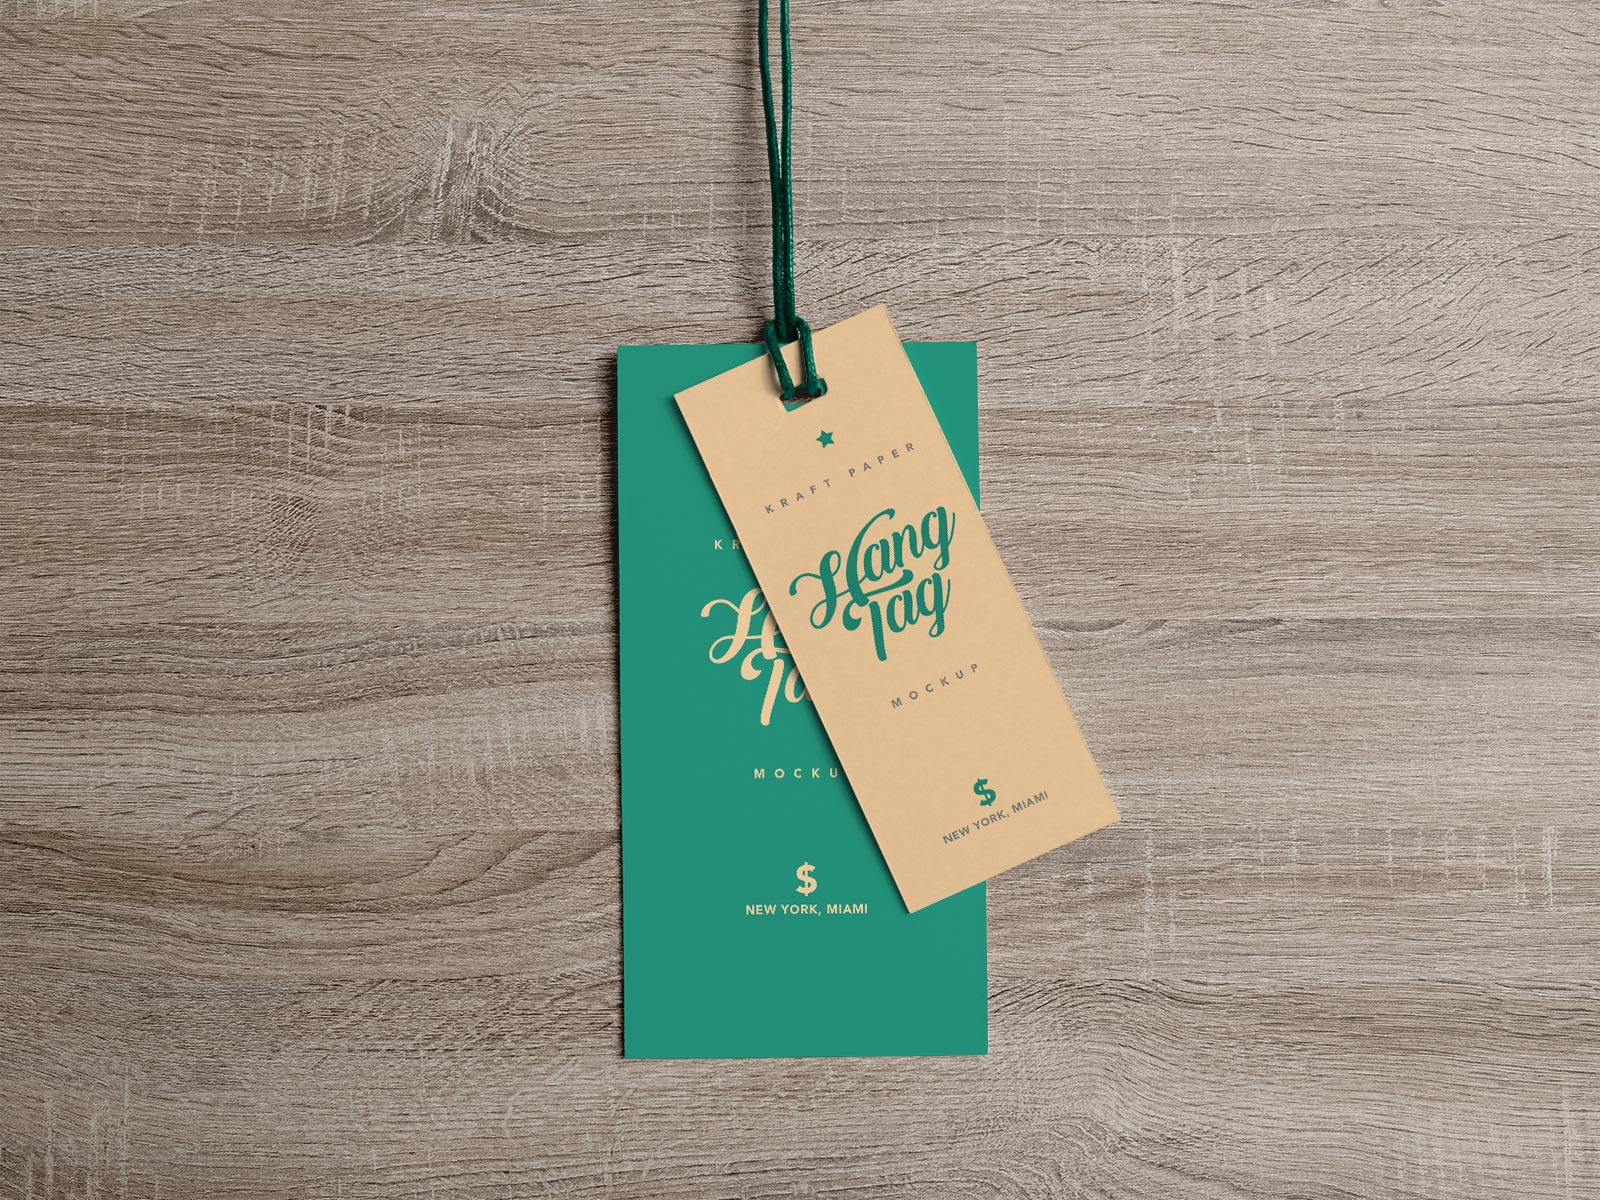 Free-Dual-Cloth-Hanging-Tag-Mockup-PSD-2